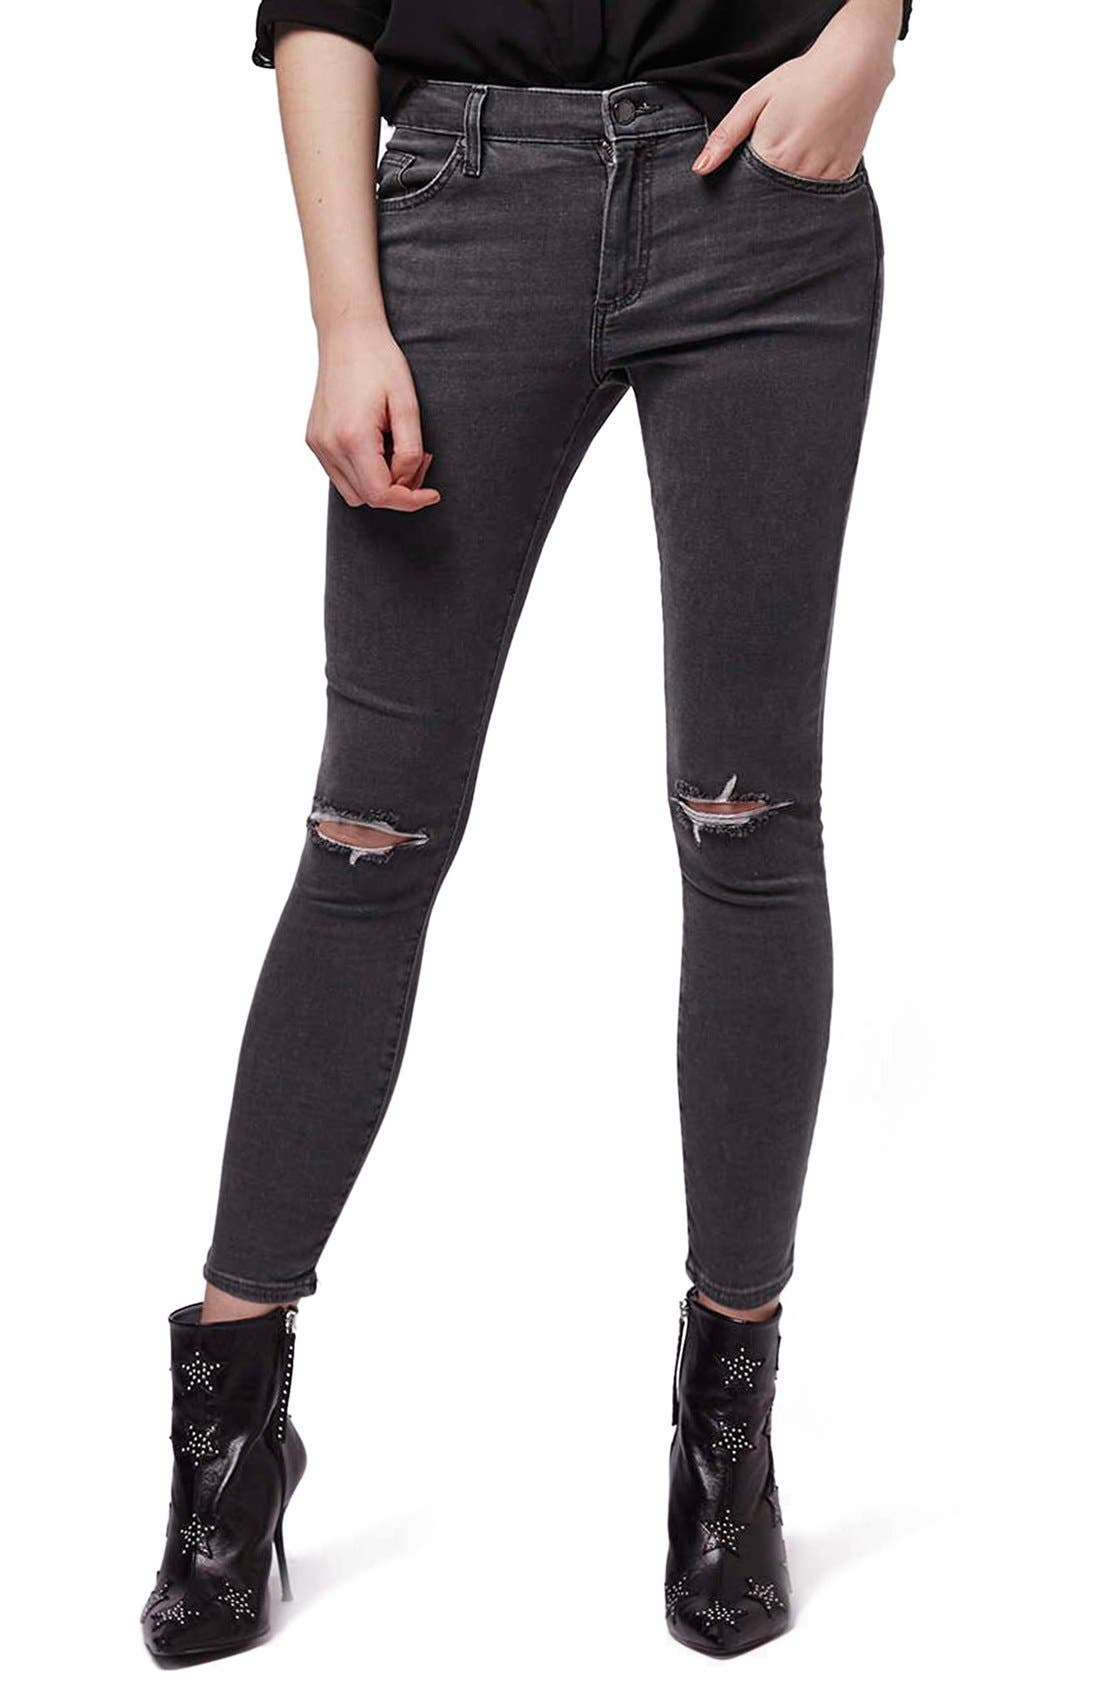 Main Image - Topshop 'Leigh' Ripped Skinny Jeans (Petite)